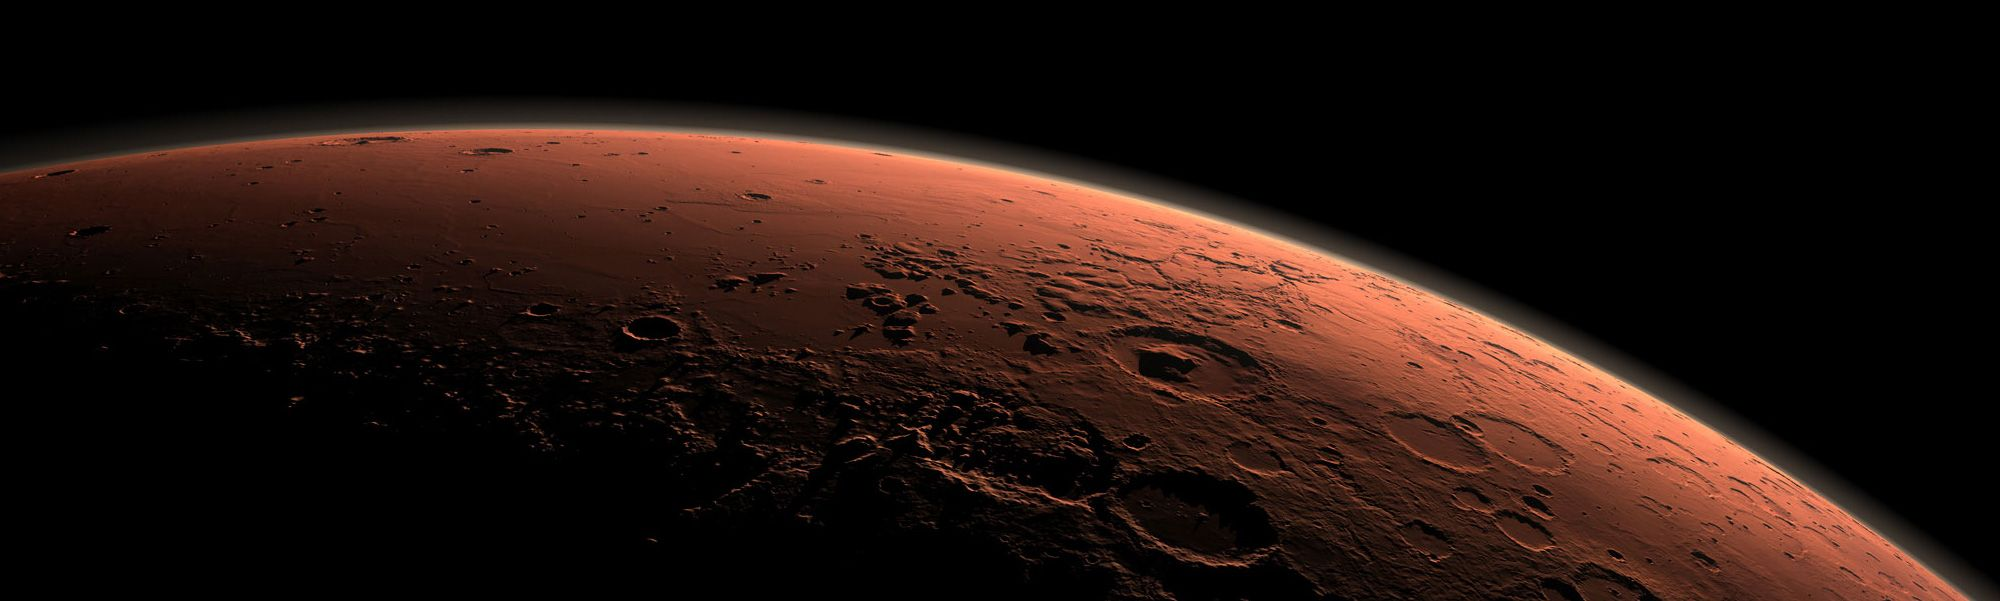 So you want to go to Mars... - Curious